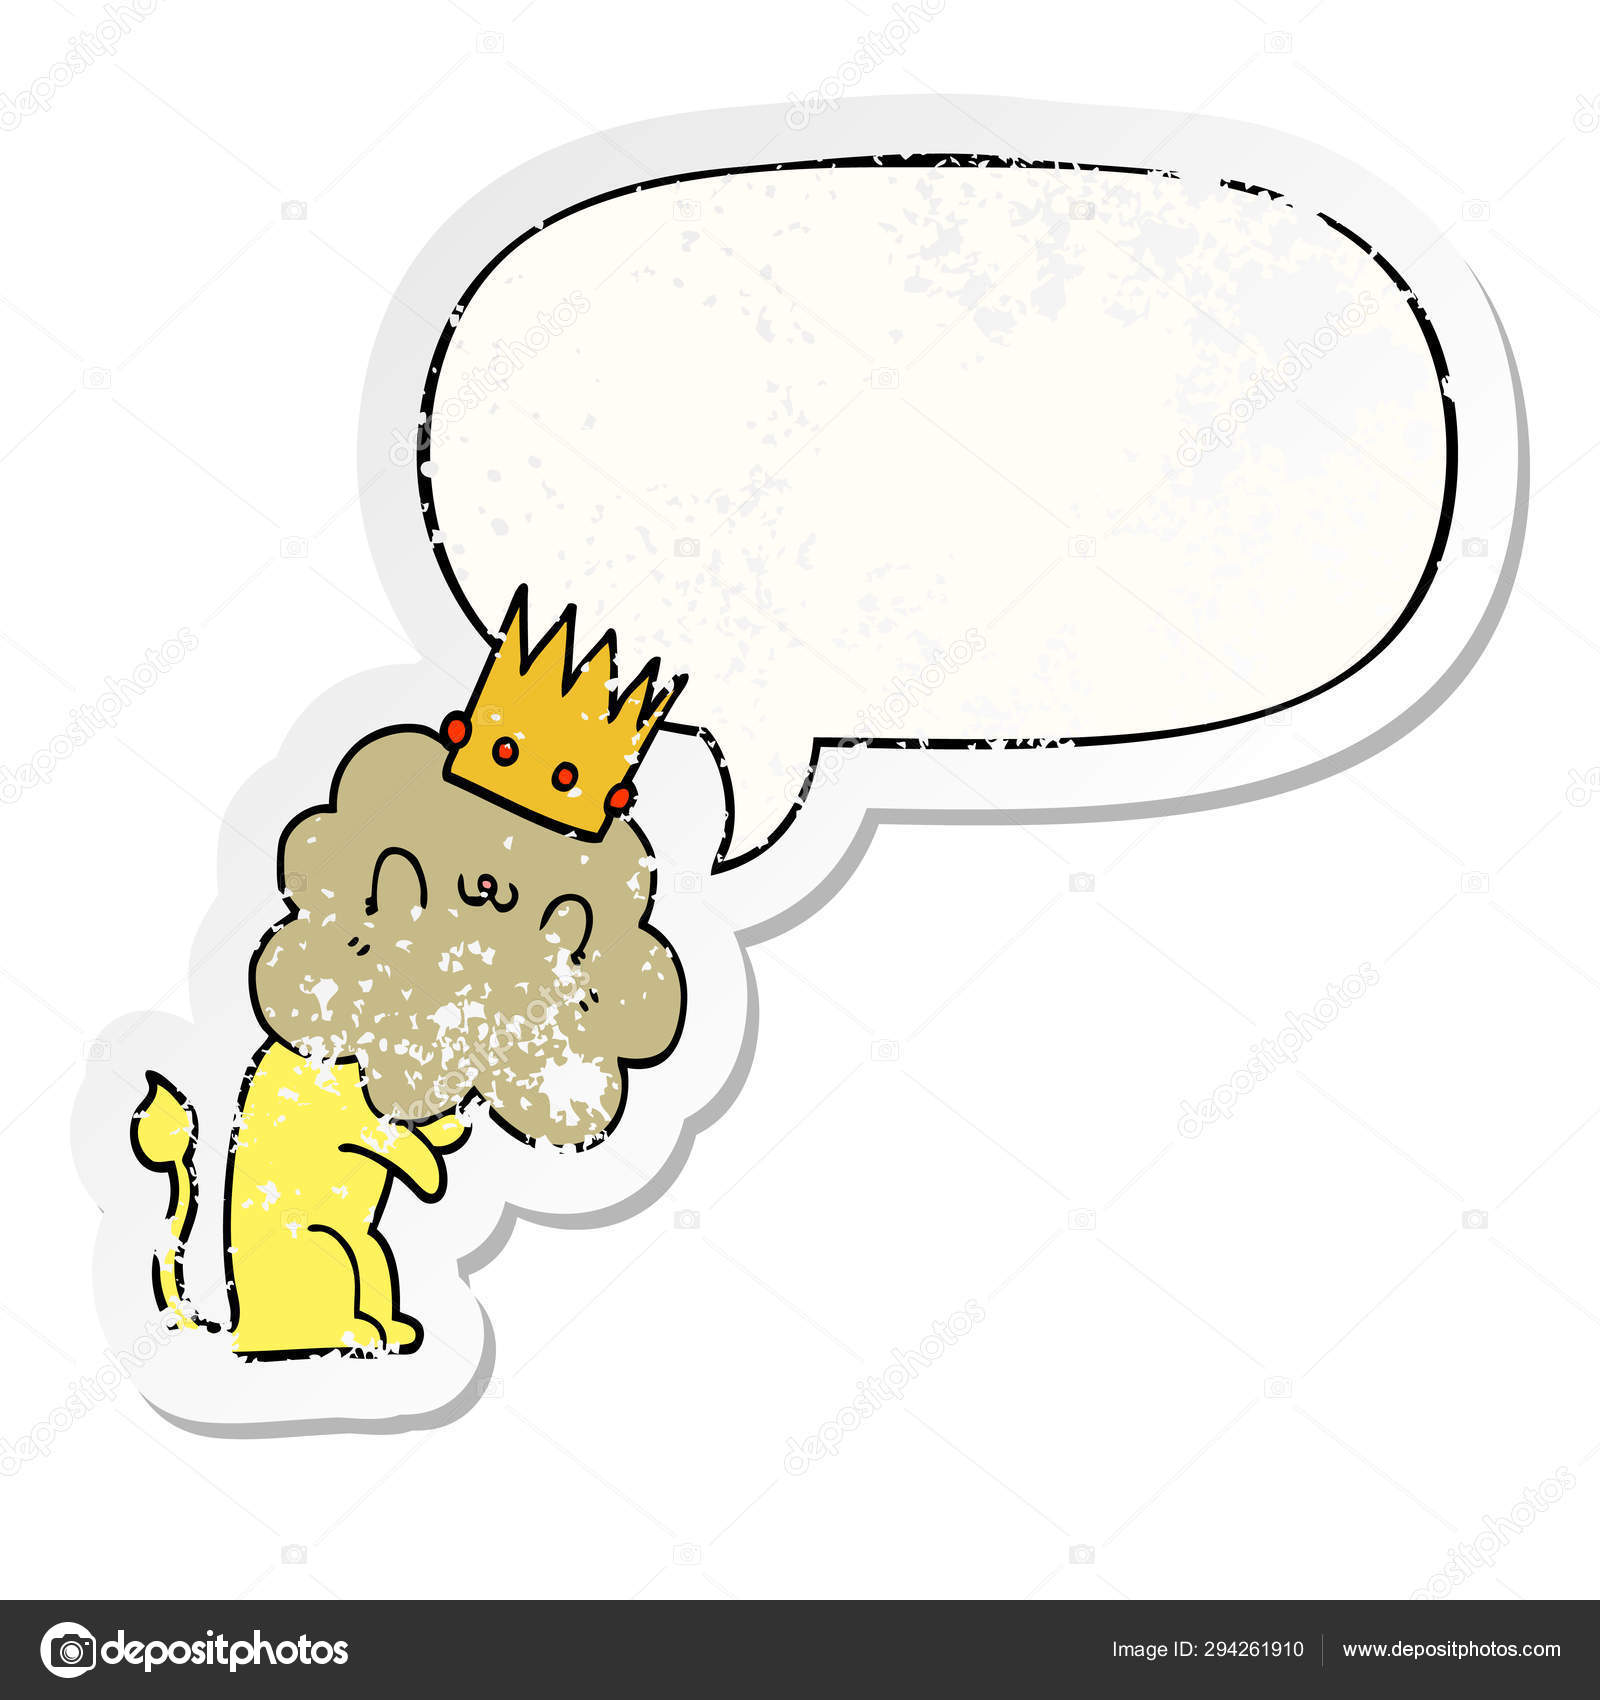 Cartoon Lion And Crown And Speech Bubble Distressed Sticker Stock Vector C Lineartestpilot 294261910 See more ideas about lion tattoo, lion tattoo with crown, lion. https depositphotos com 294261910 stock illustration cartoon lion and crown and html